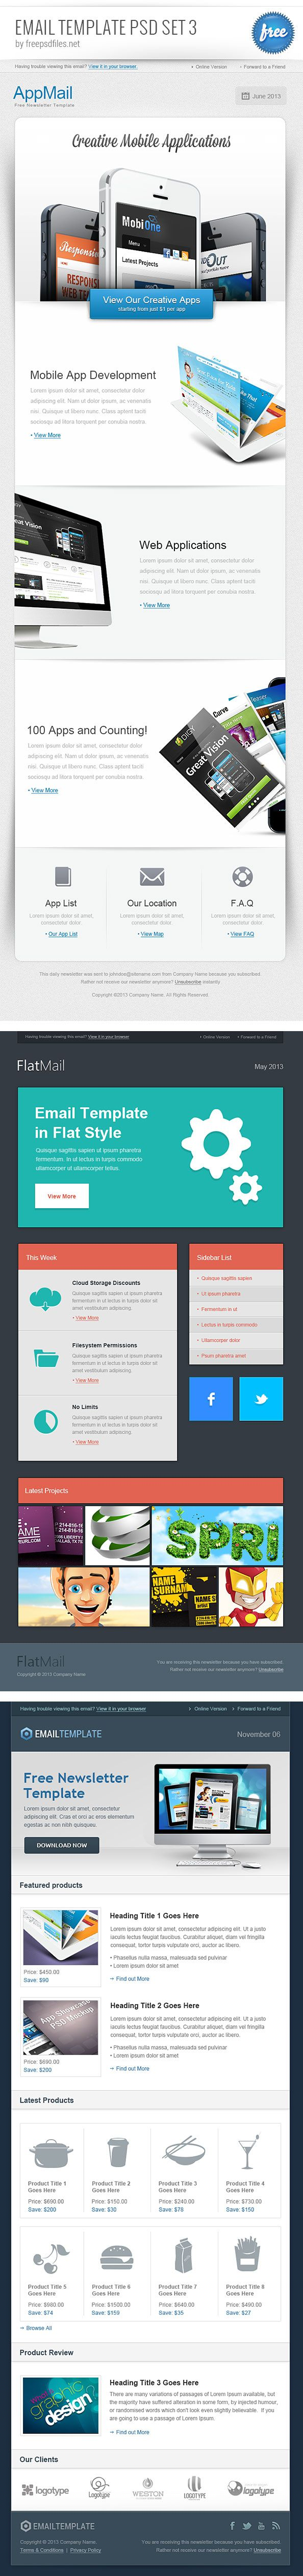 Email Template Psd Set 3 Email Marketing Pinterest Email